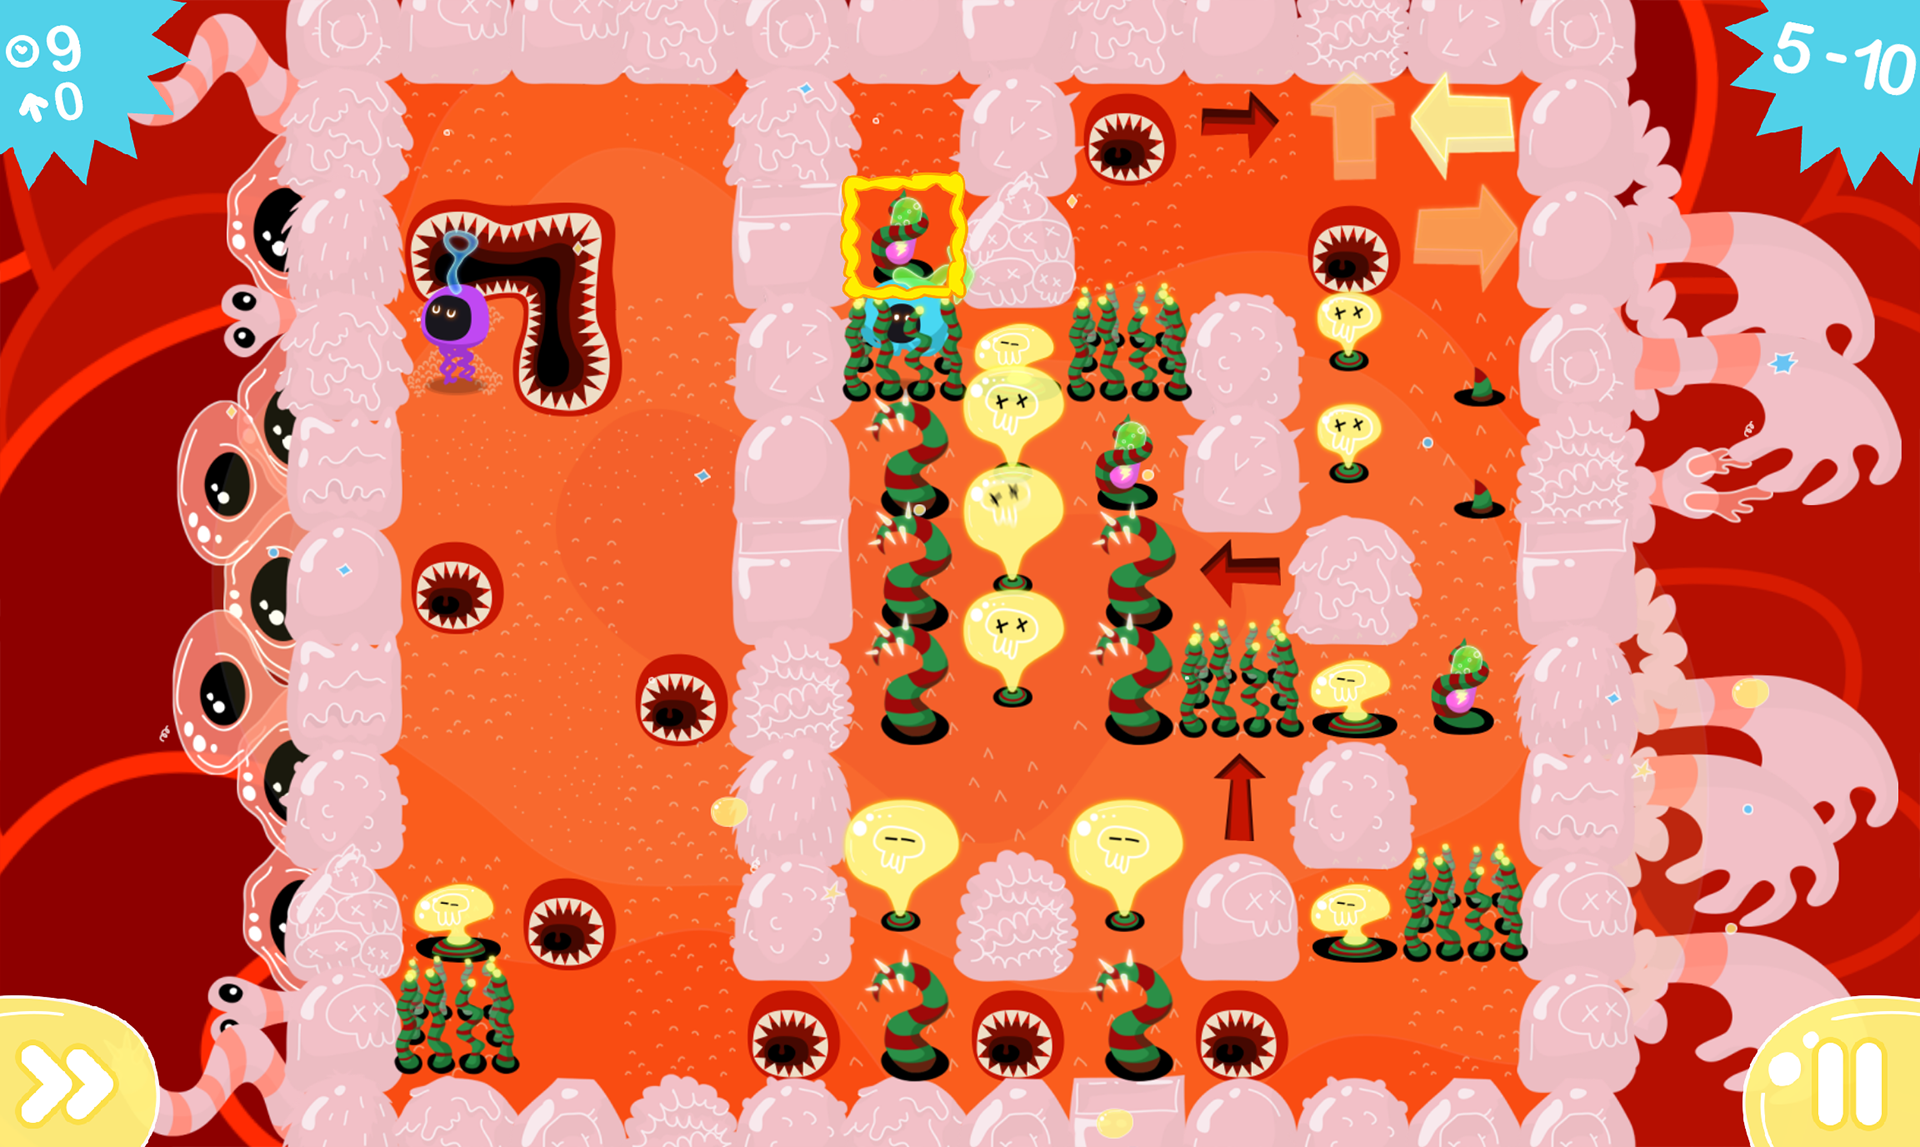 Lemmings gets weird in colorful and slimy puzzler Idioctopus